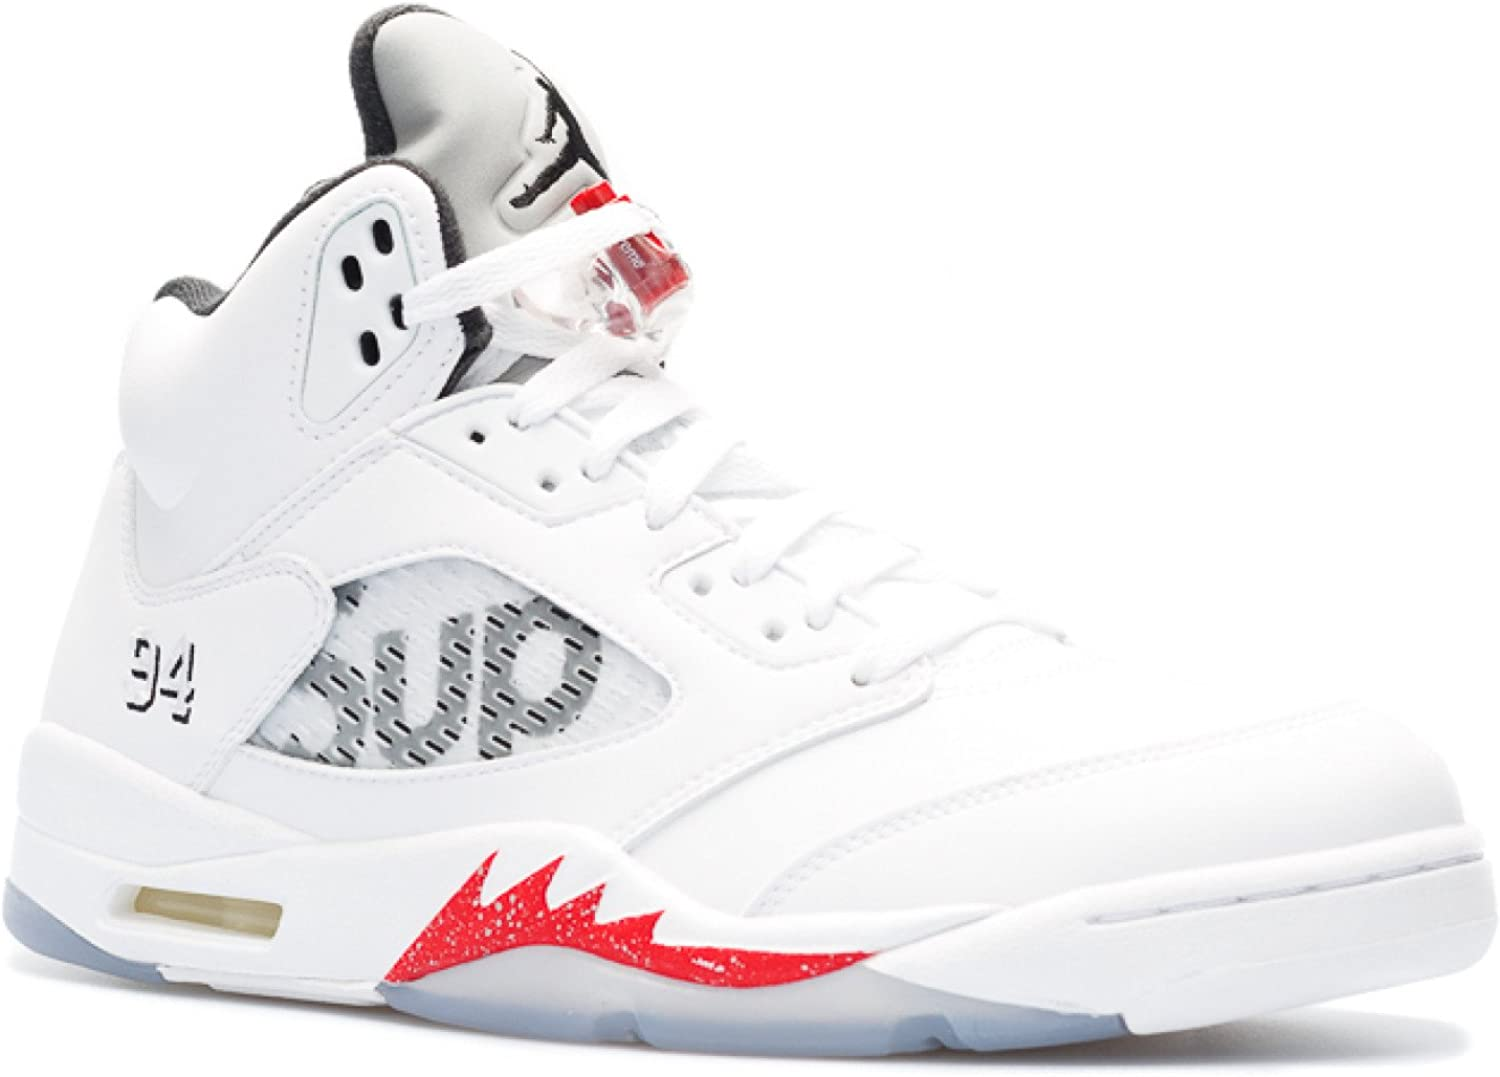 | AIR JORDAN 5 Retro Supreme 'Supreme' 824371